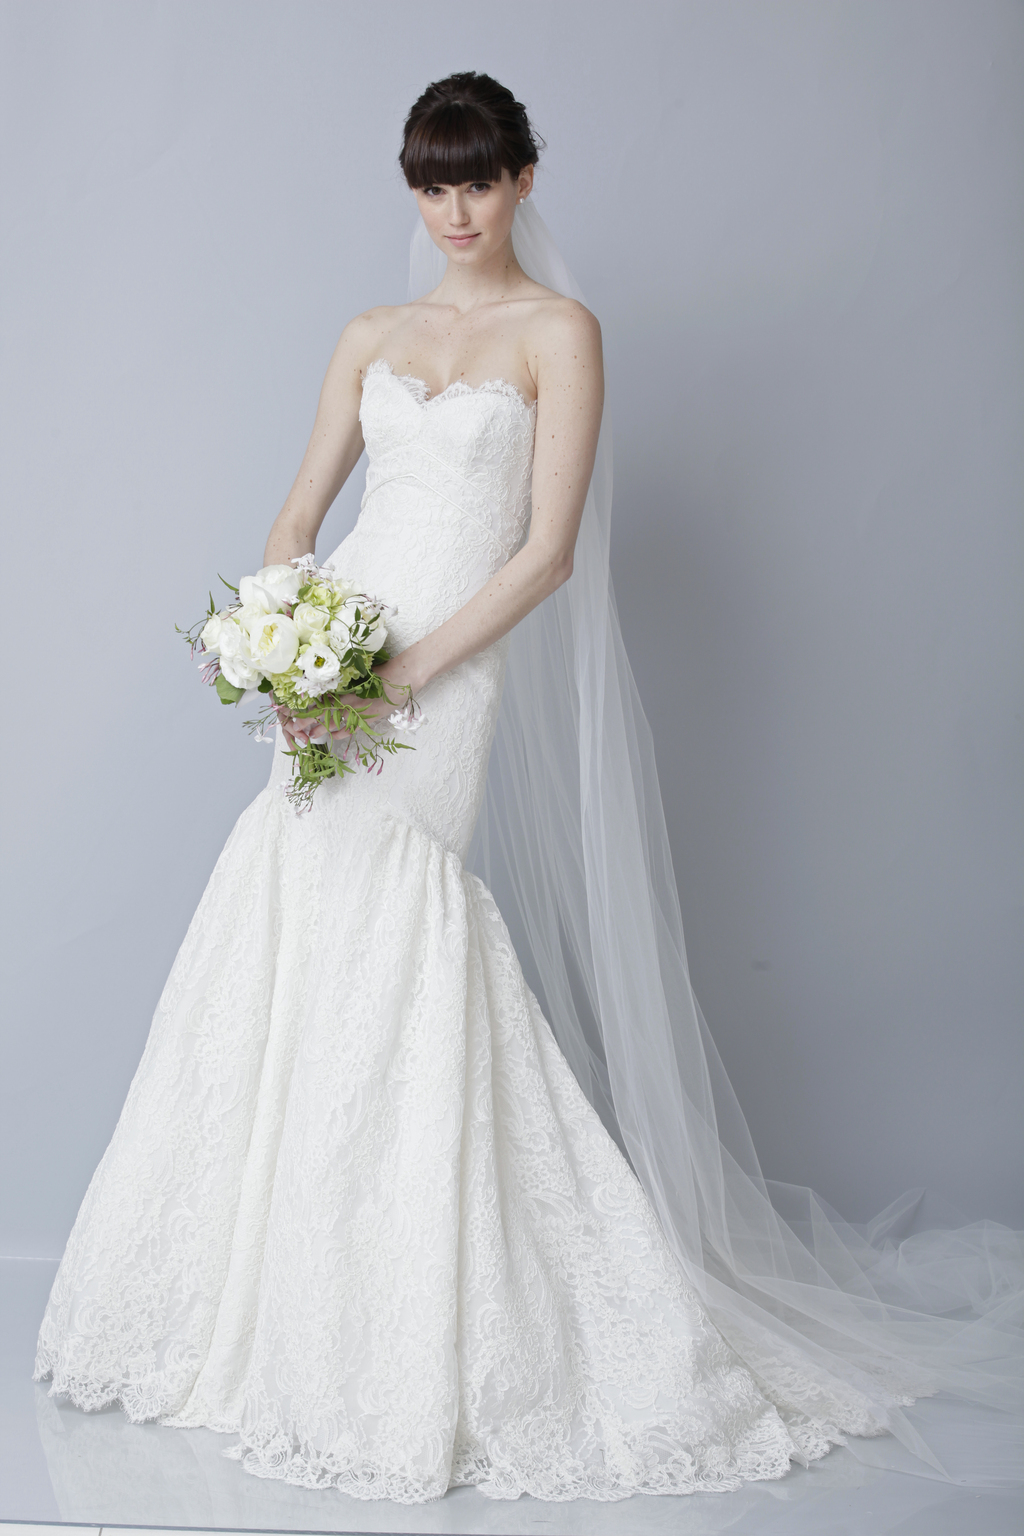 Theia-white-collection-wedding-dress-spring-2013-bridal-gown-890014.full